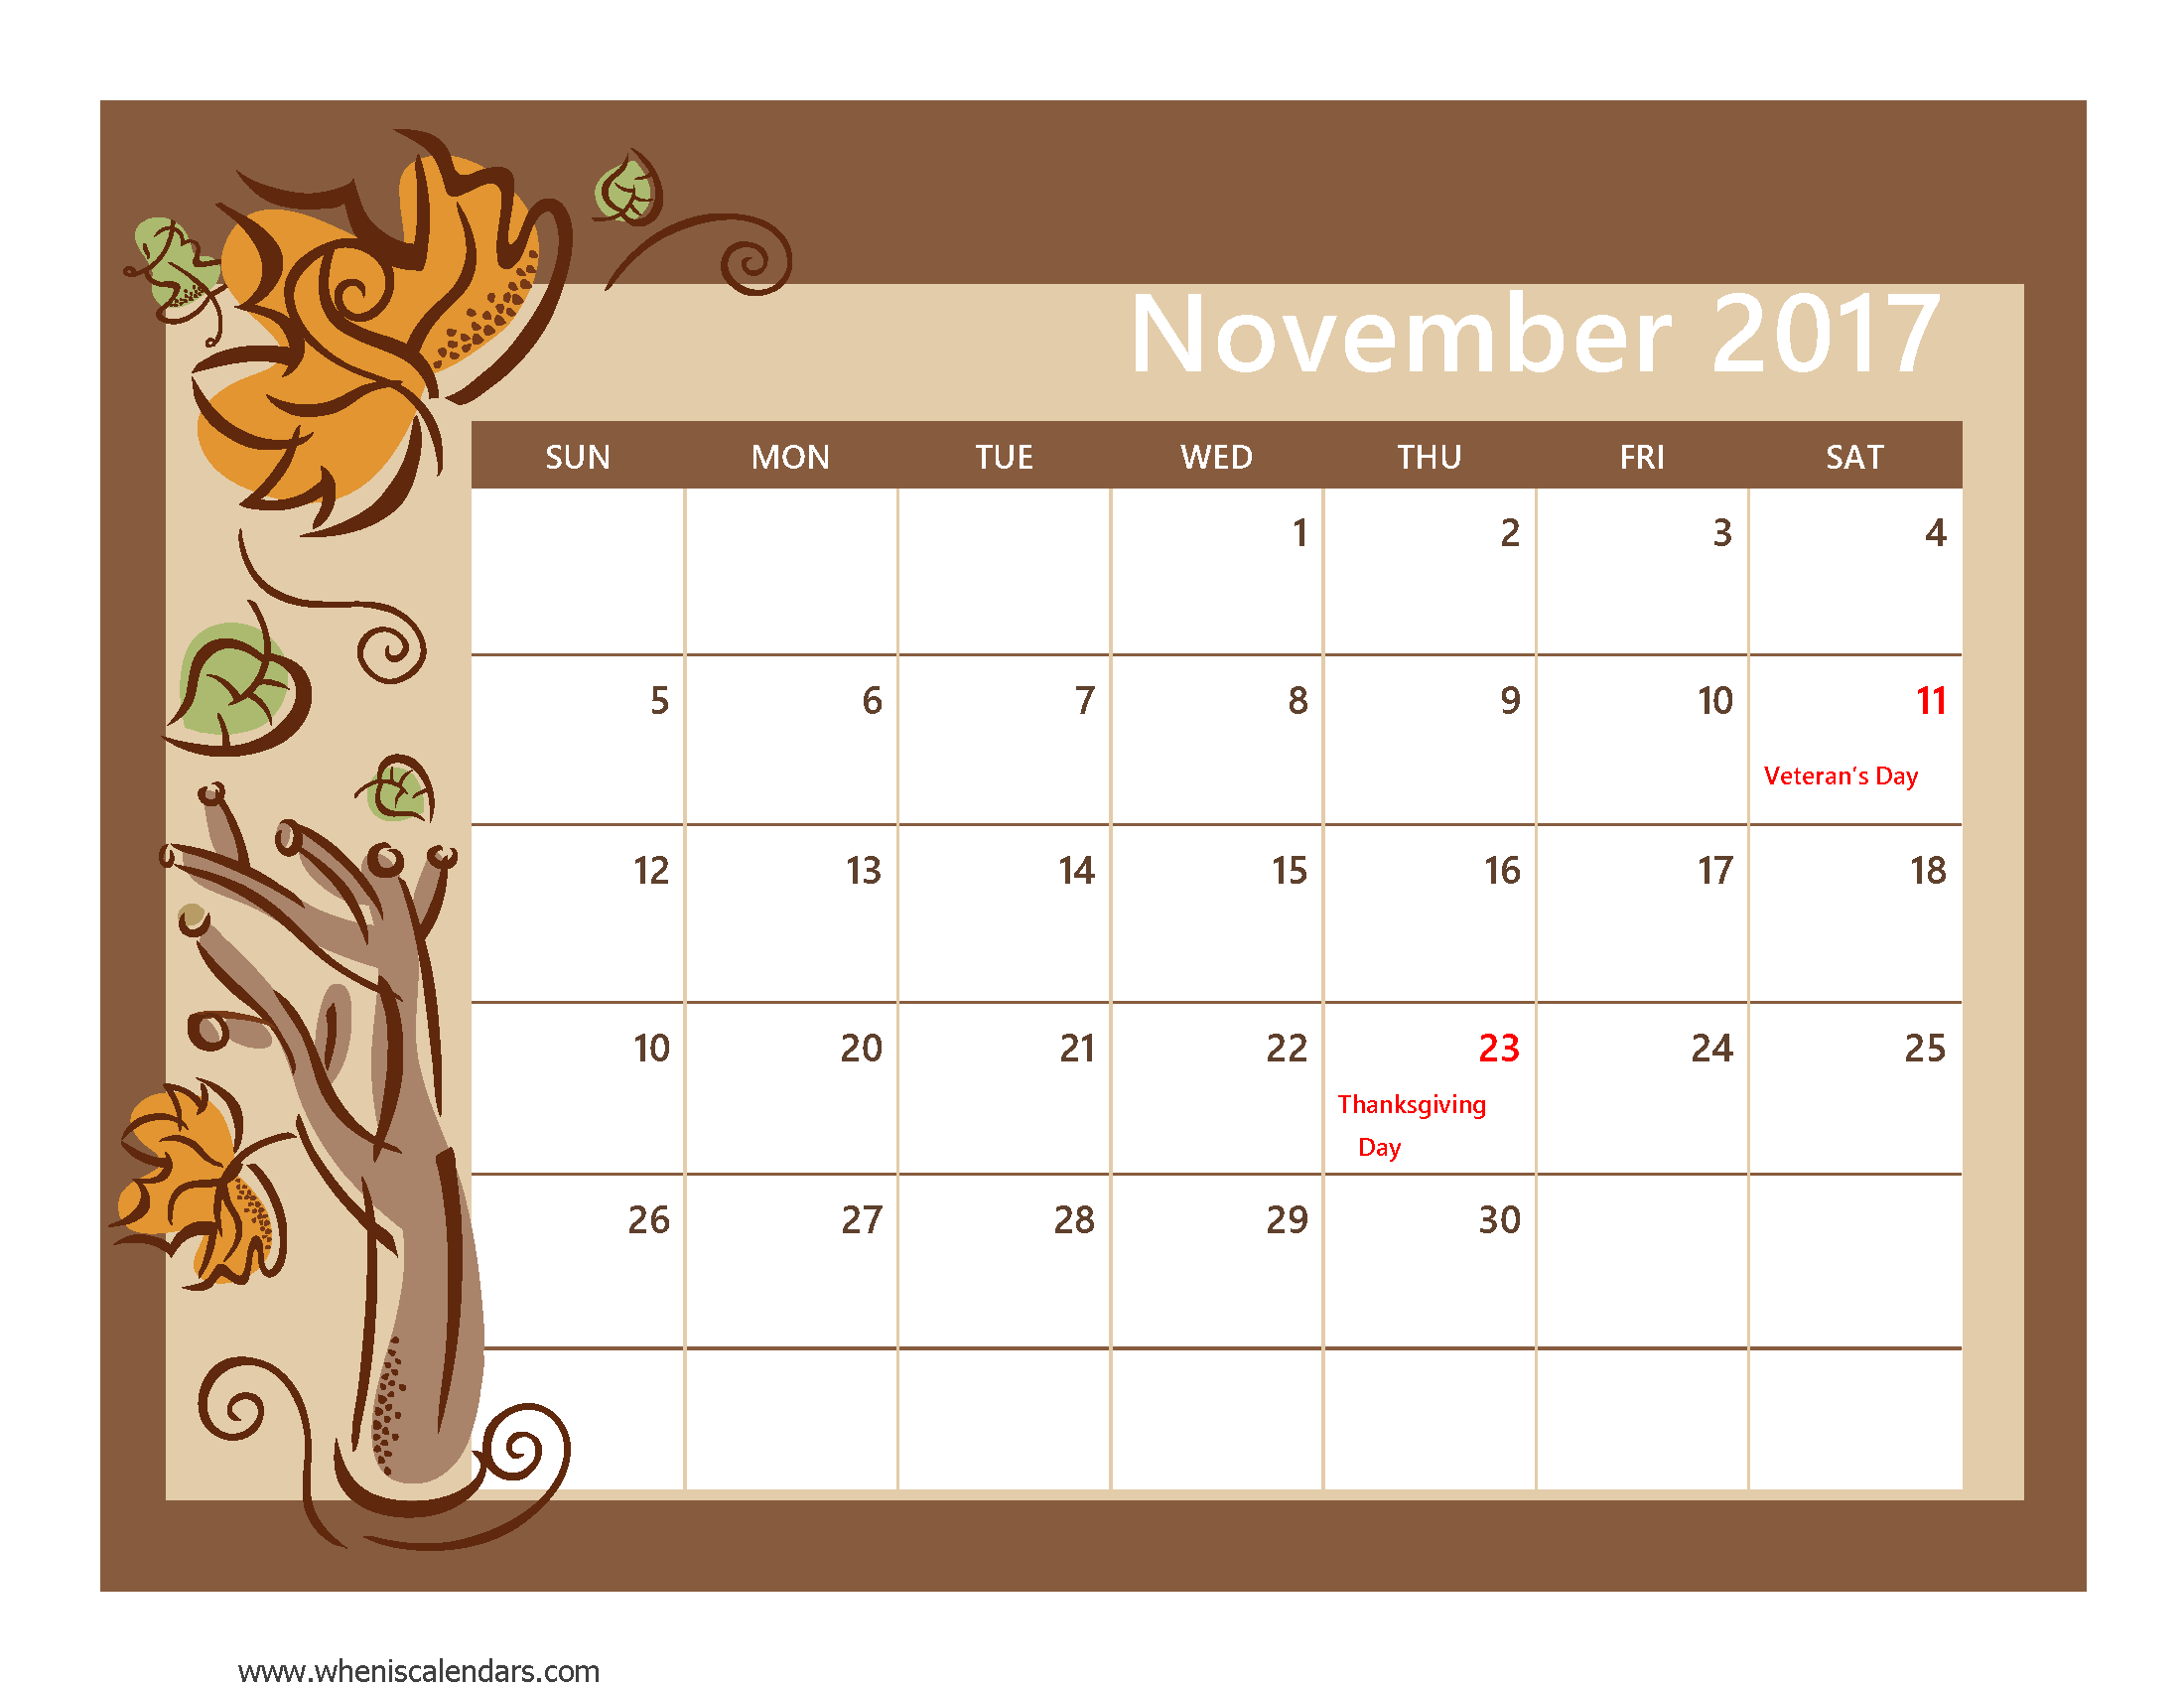 November 2017 Calendar With Holidays Uk | yearly calendar template